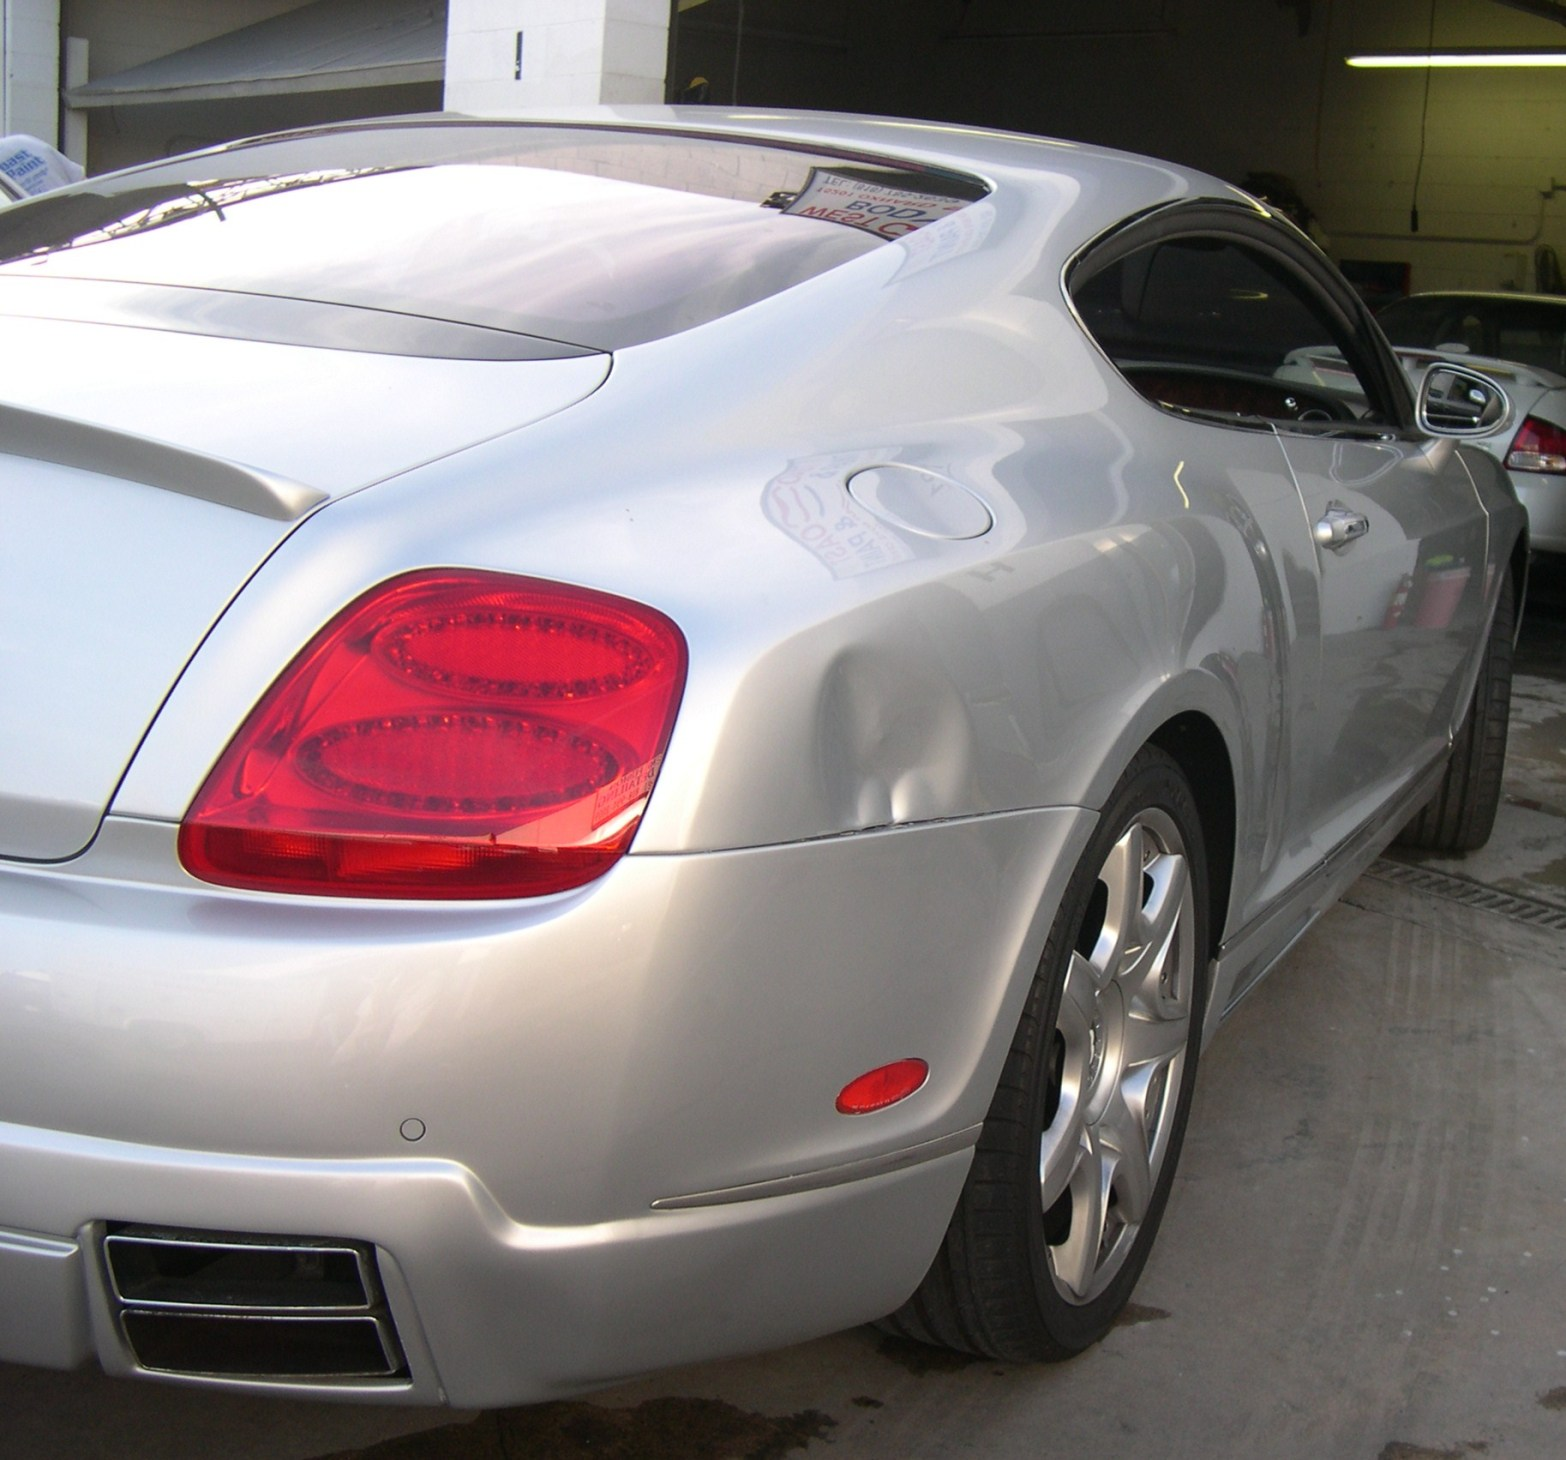 west-coast-body-and-paint-gray-bentley-11